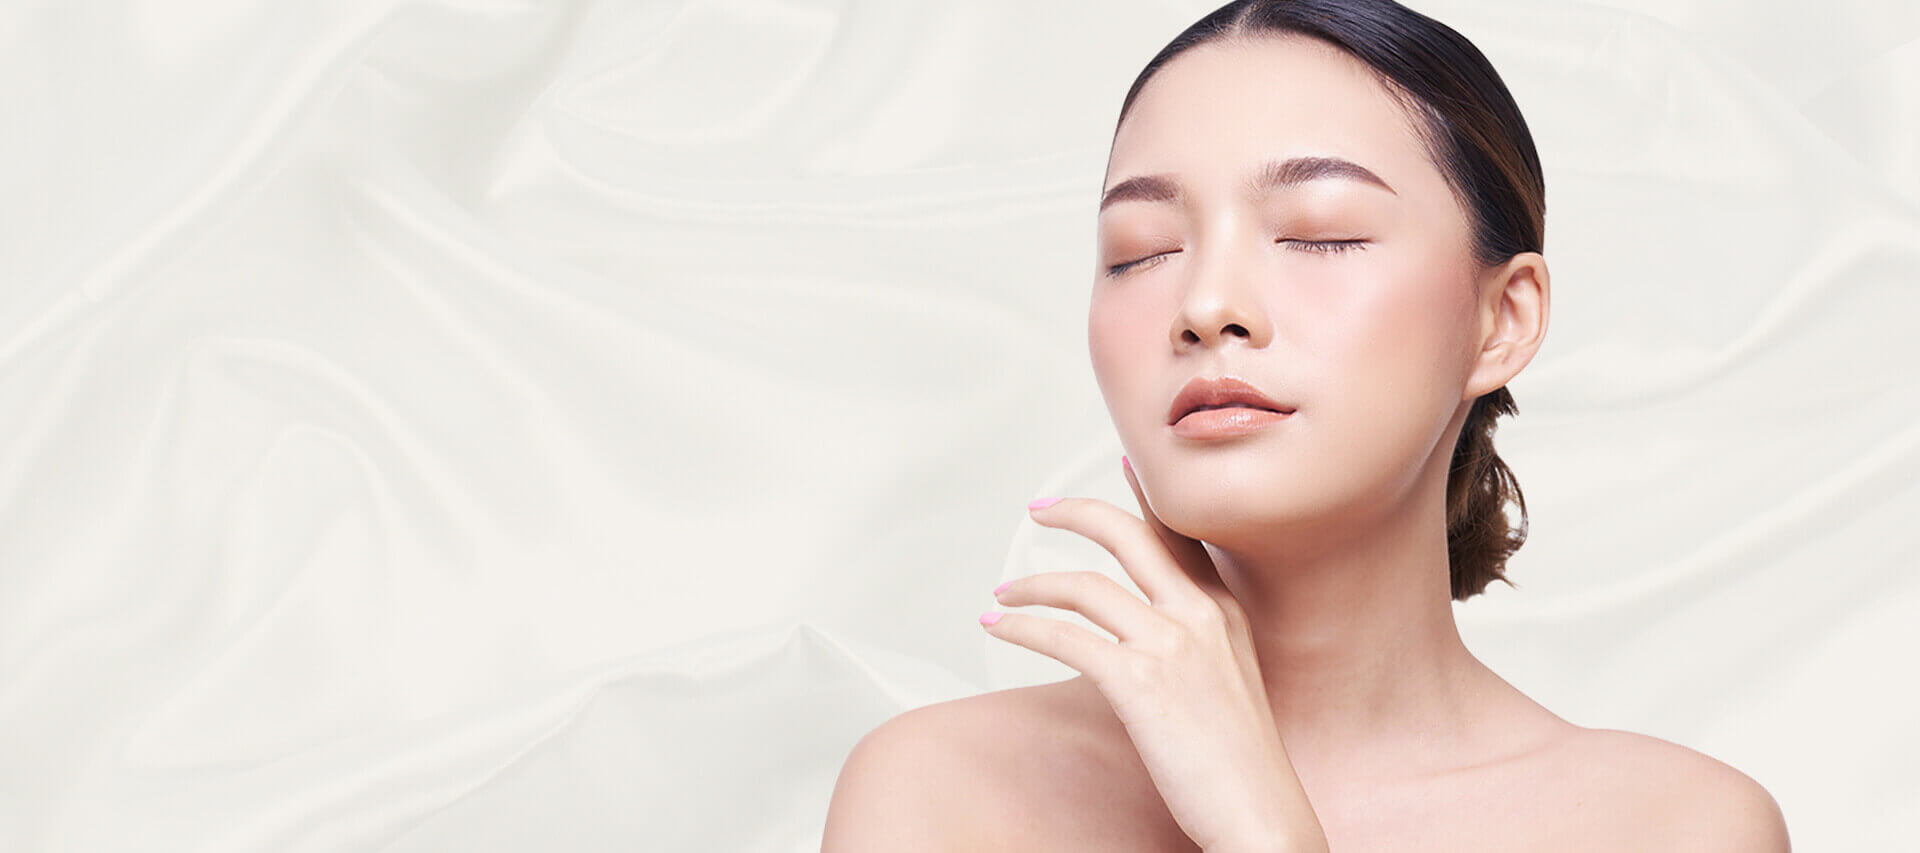 Gentle aesthetic treatments